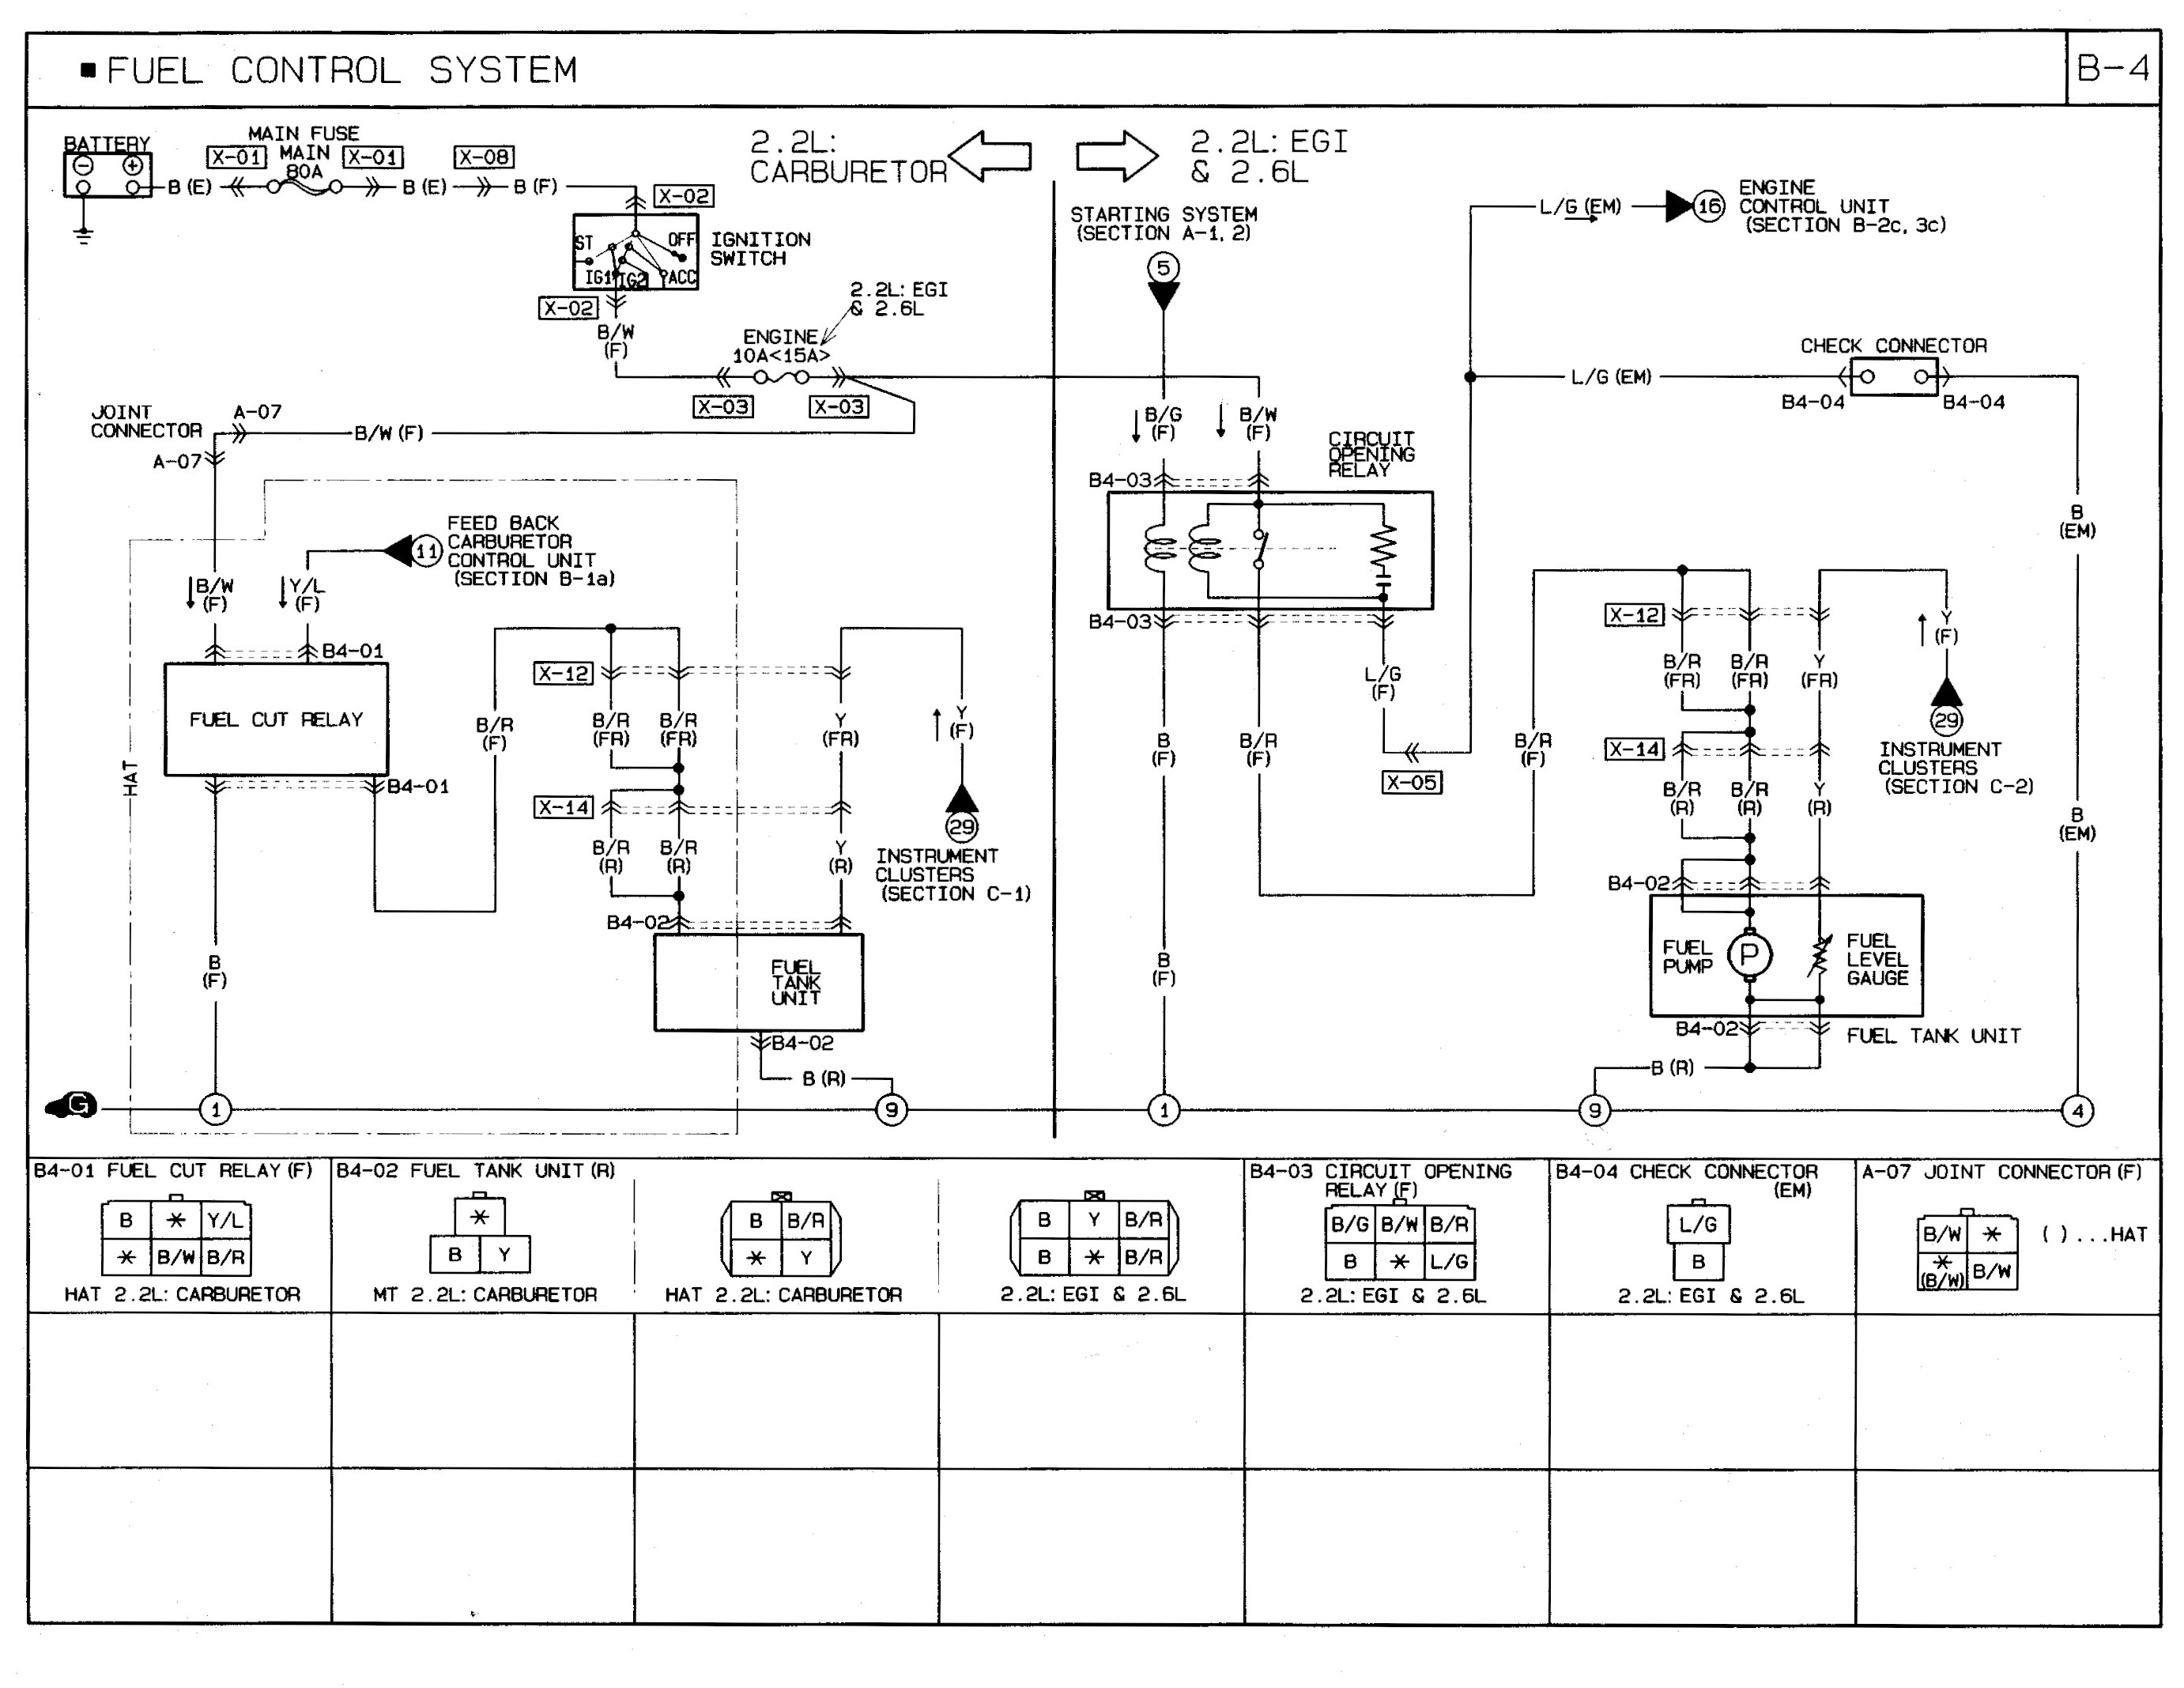 Marvelous Wiring Diagram For 1991 Mazda B2600I Wiring Diagram Wiring Cloud Vieworaidewilluminateatxorg